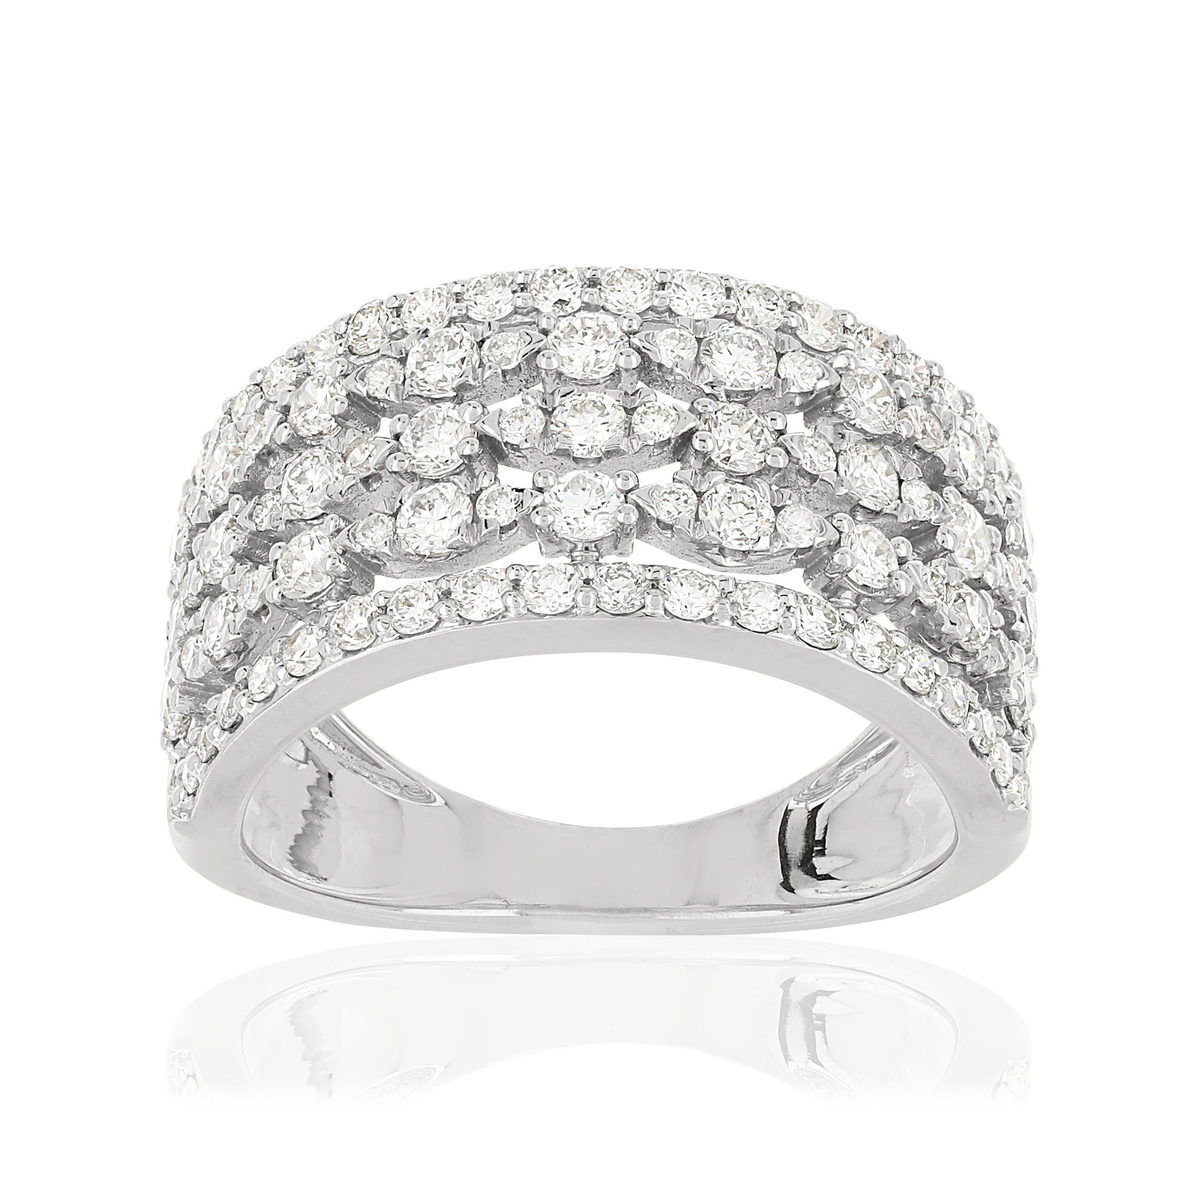 Bague MATY Or 750 blanc Diamants synthétiques - vue V1